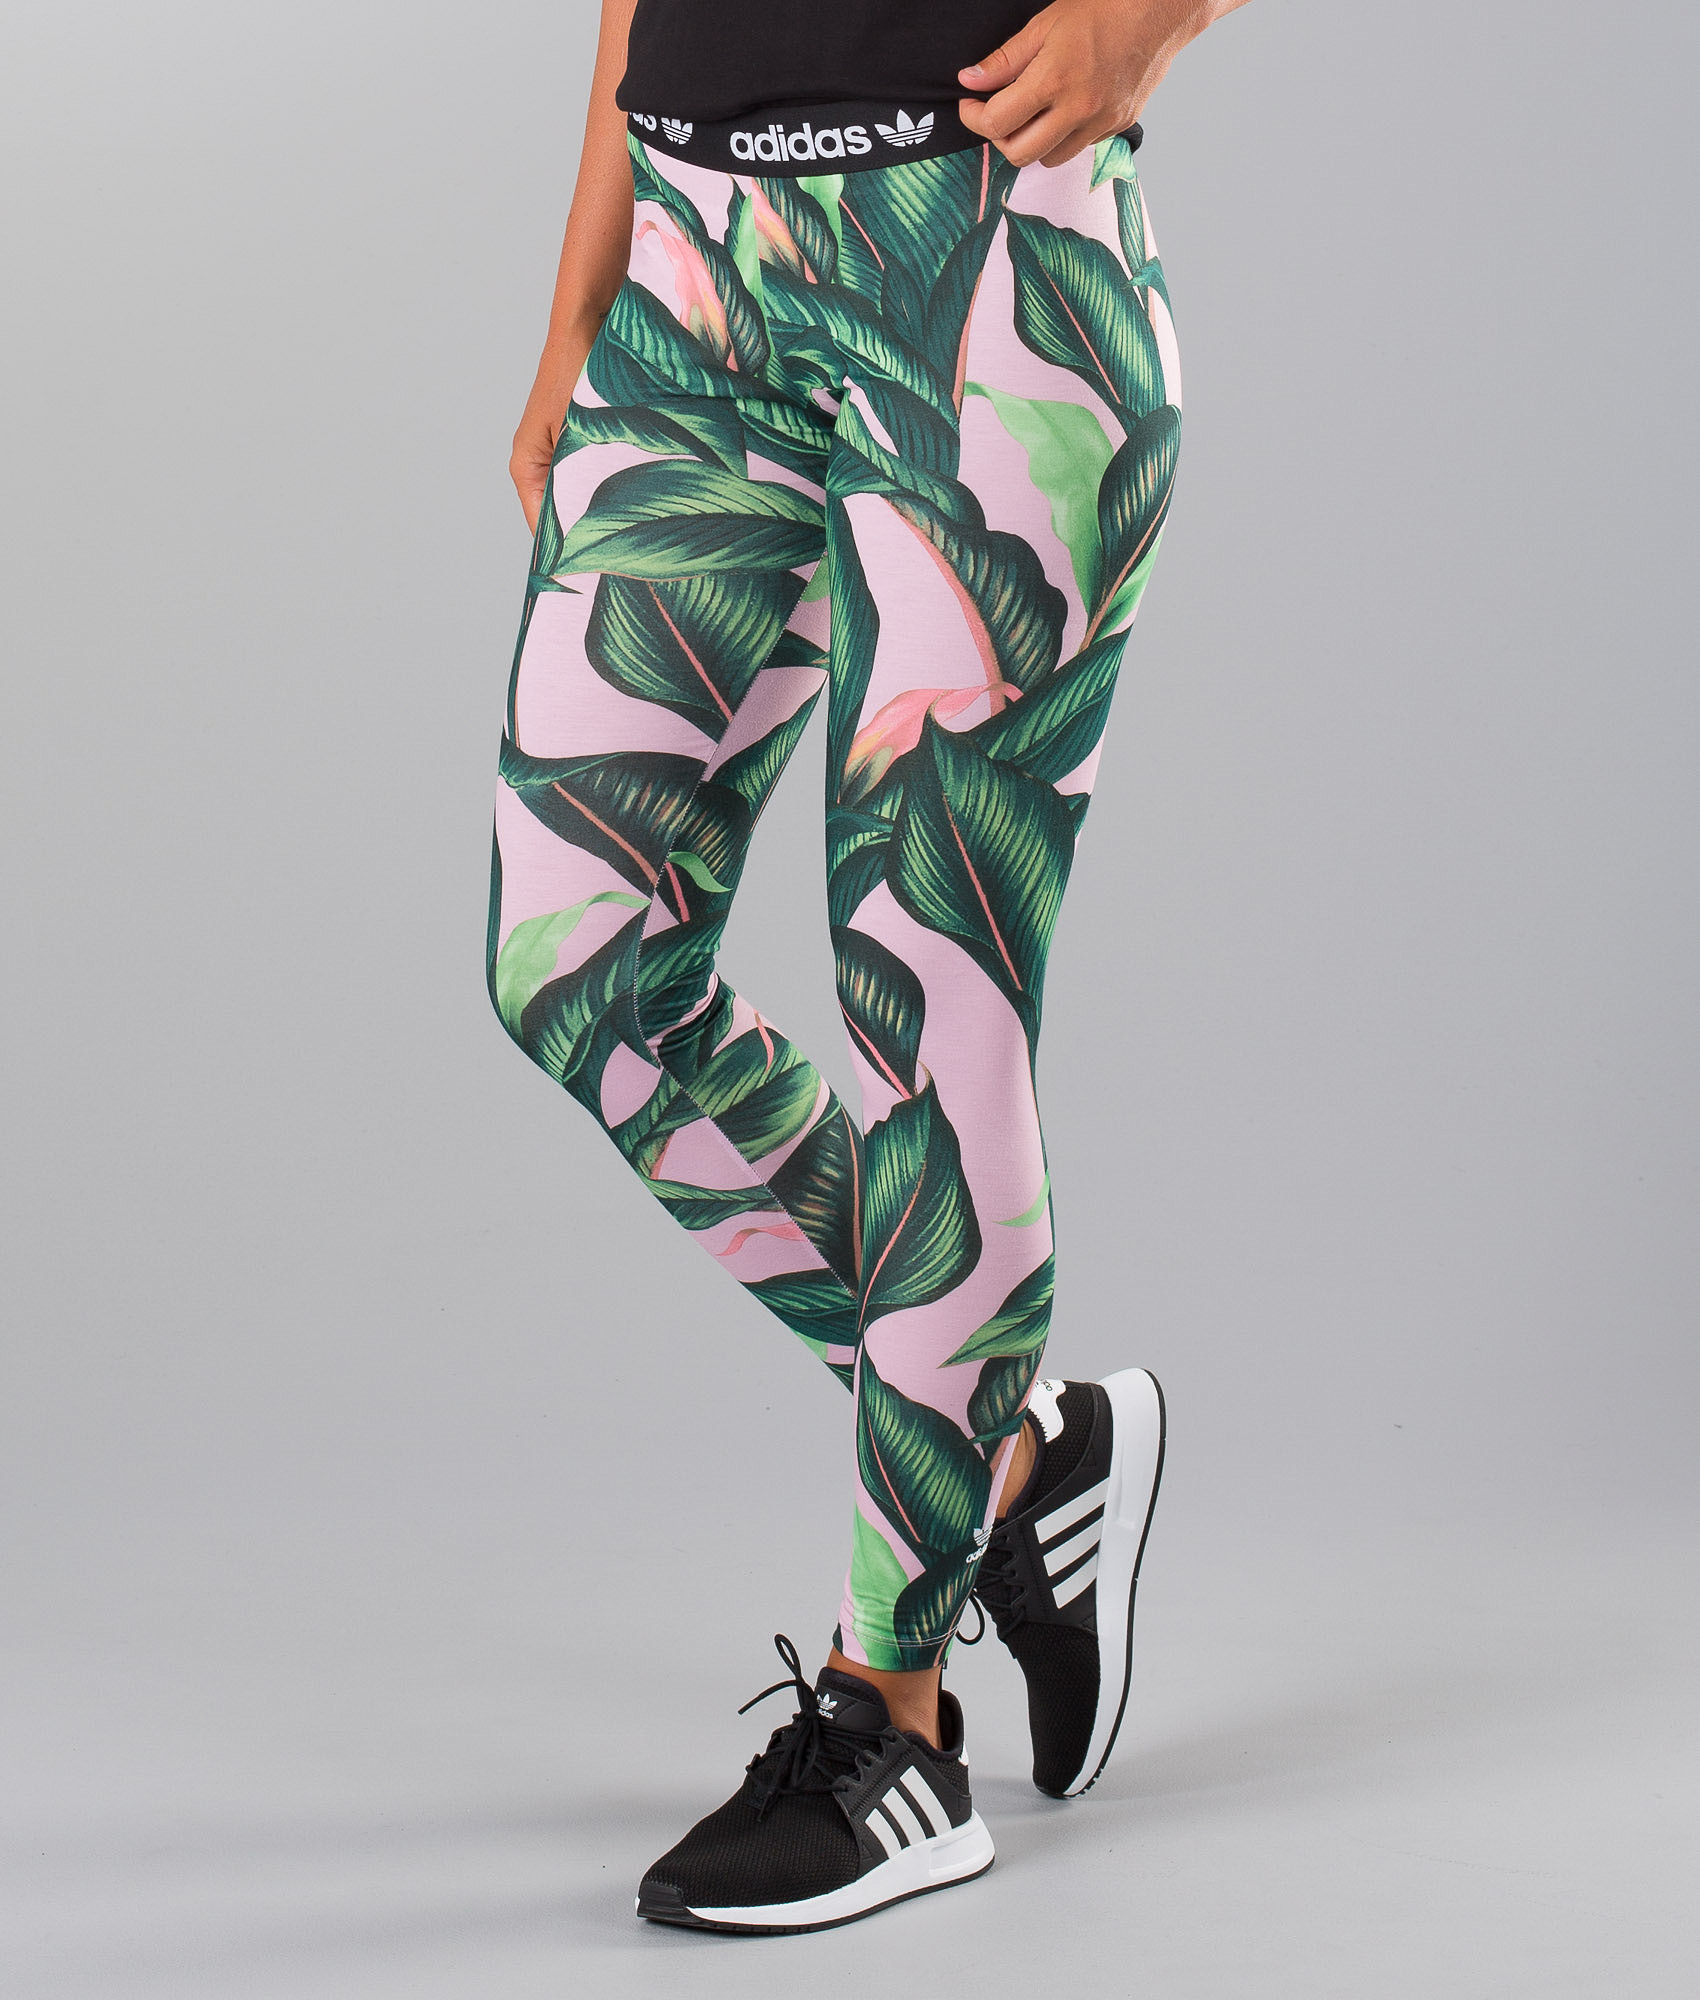 df168b2406af7a Adidas Originals Tight Leggings Multicolor - Ridestore.com